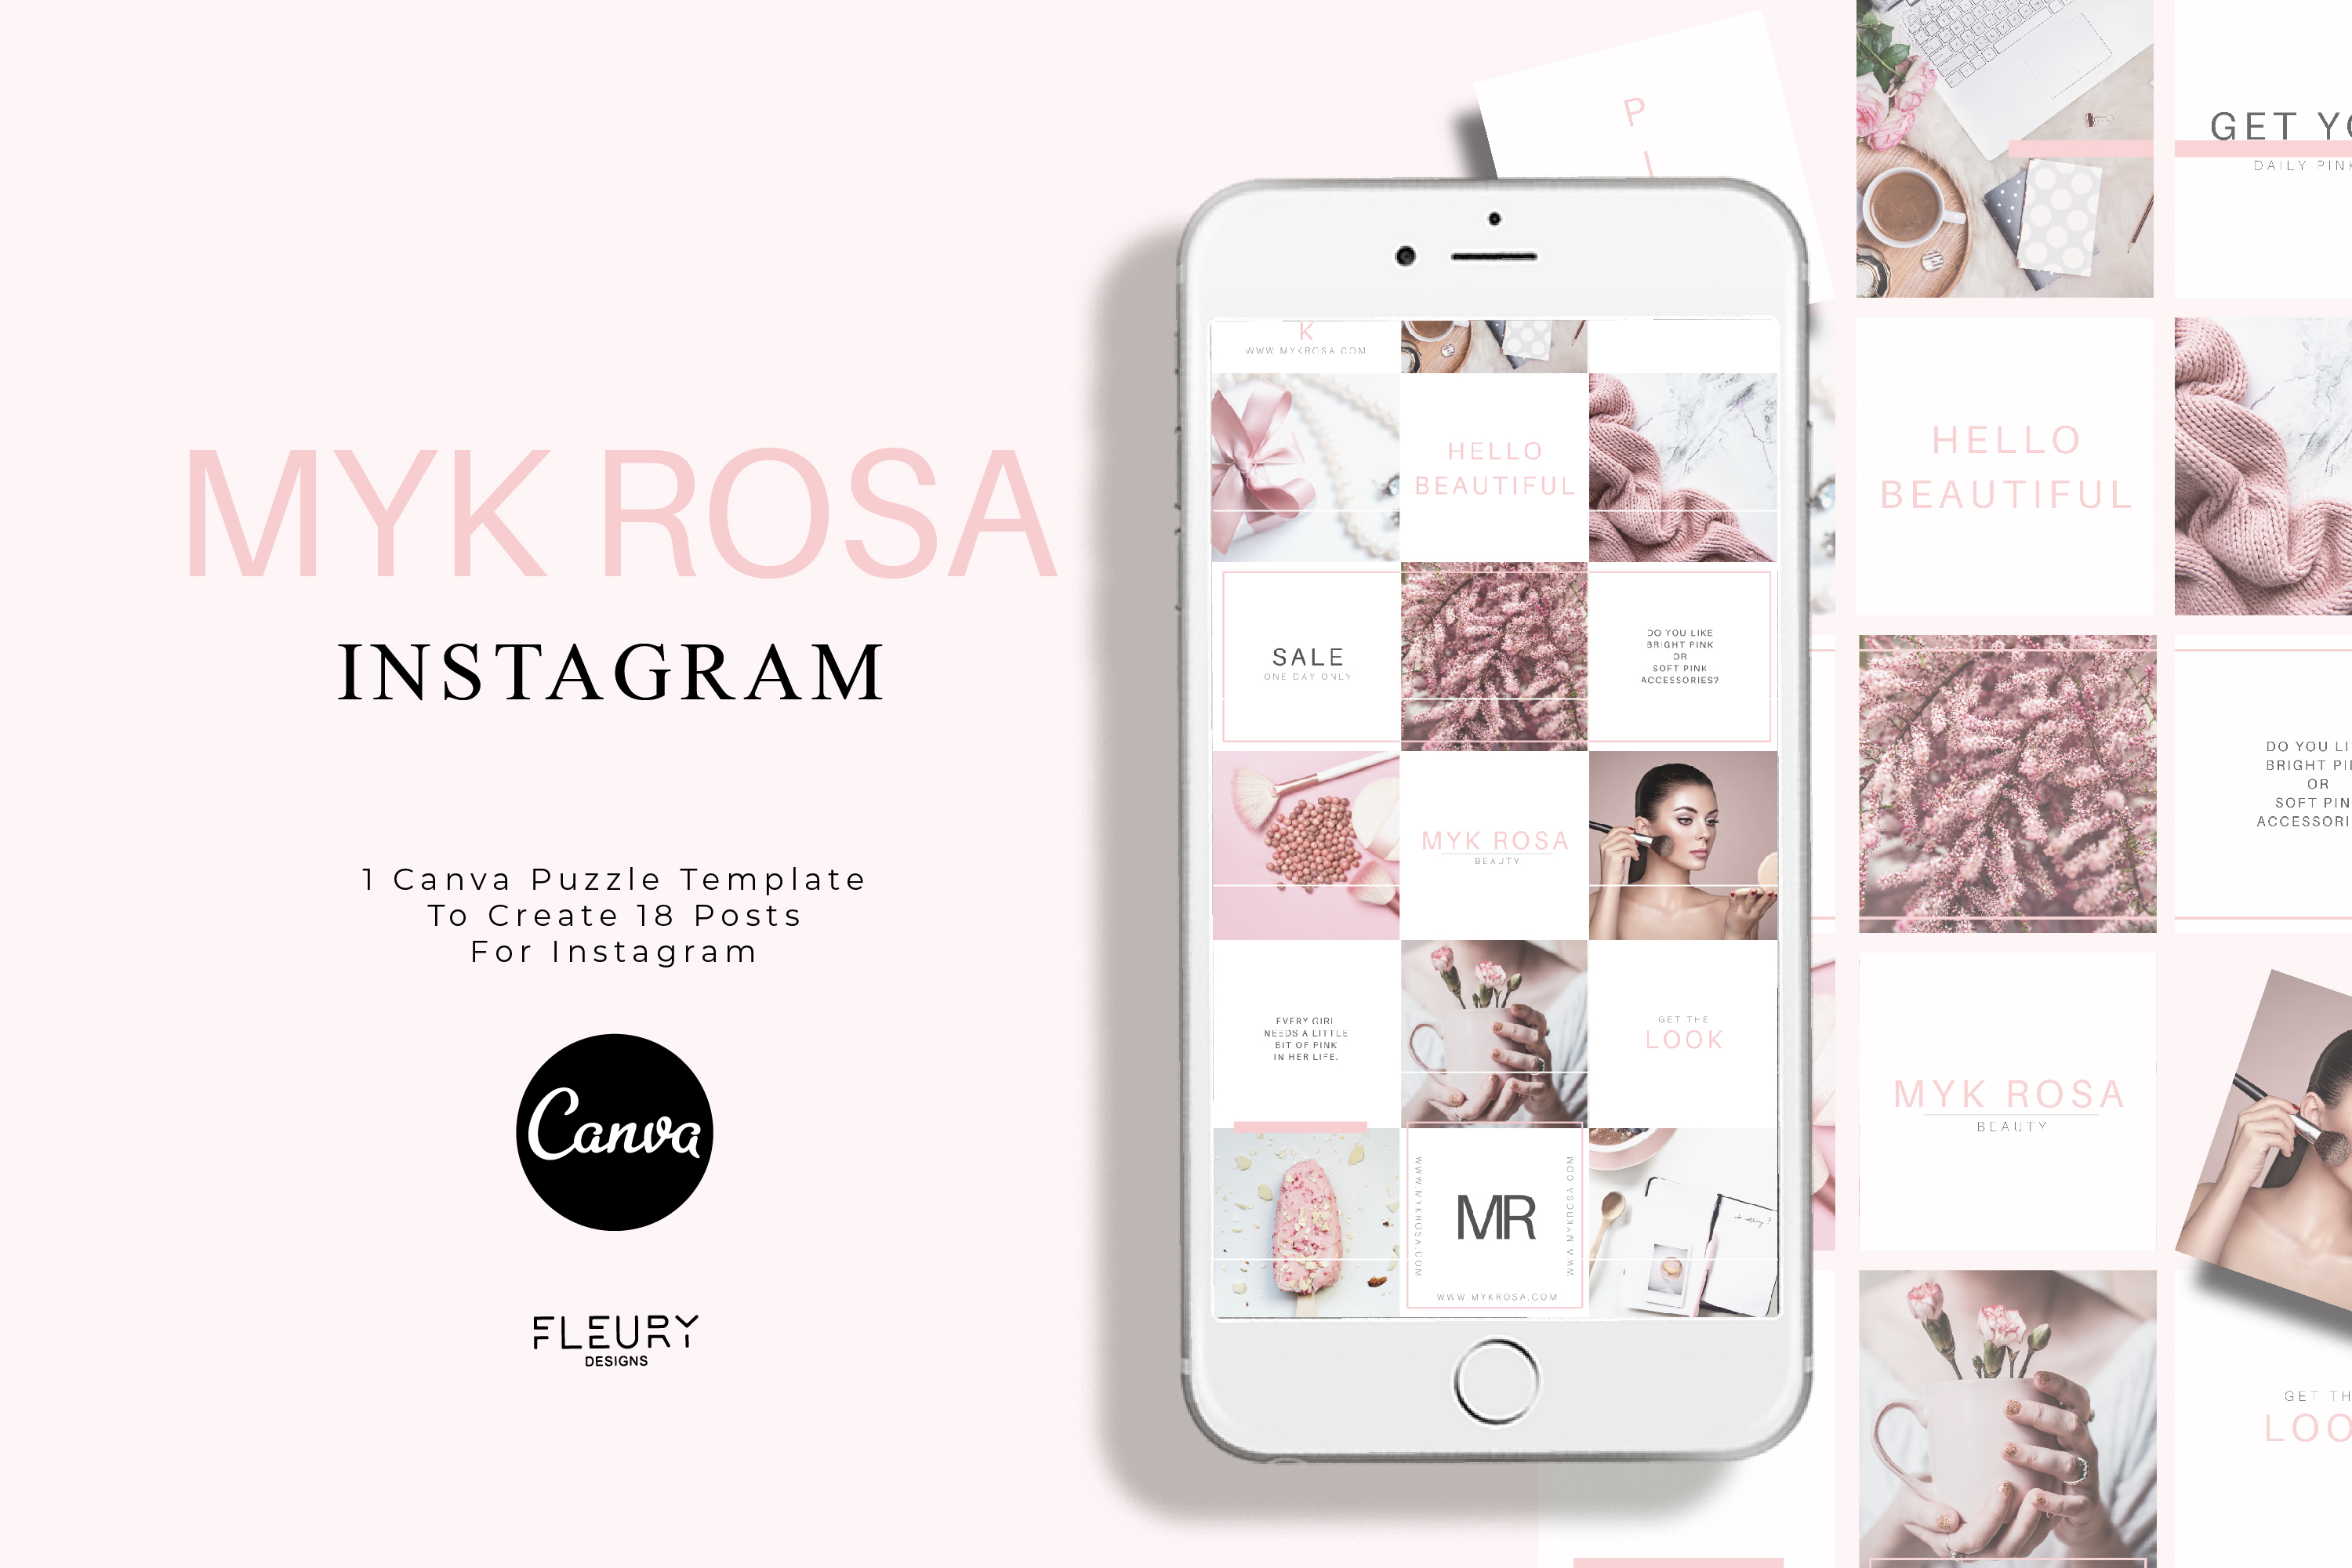 Instagram Puzzle Canva Template - Myk Rosa example image 1